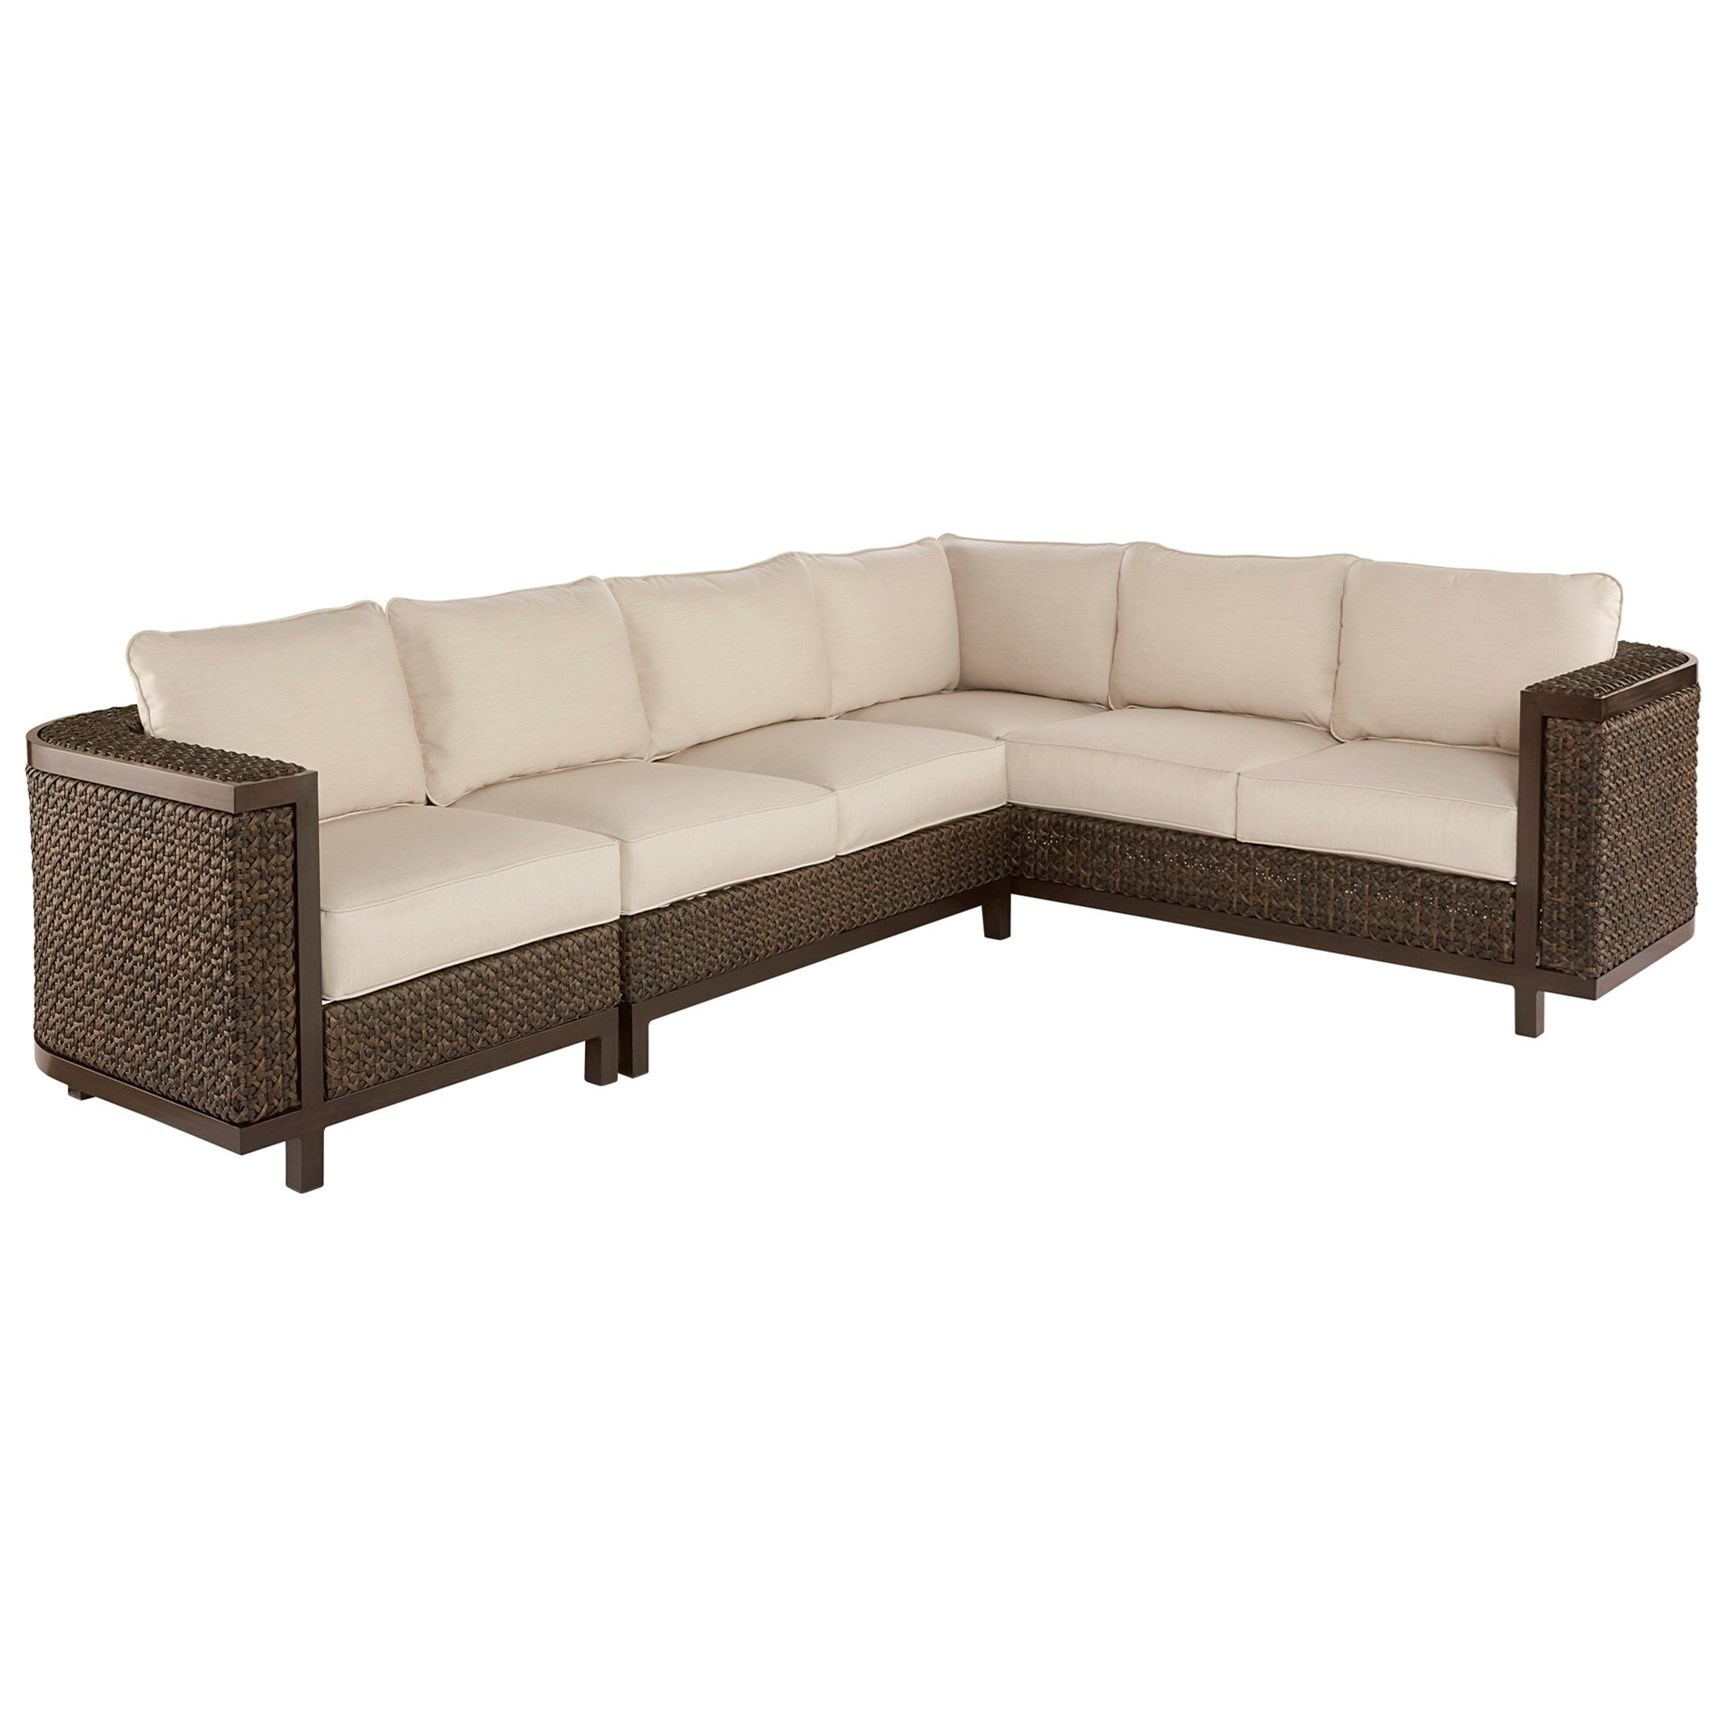 3 Piece Brentwood Outdoor Sectional